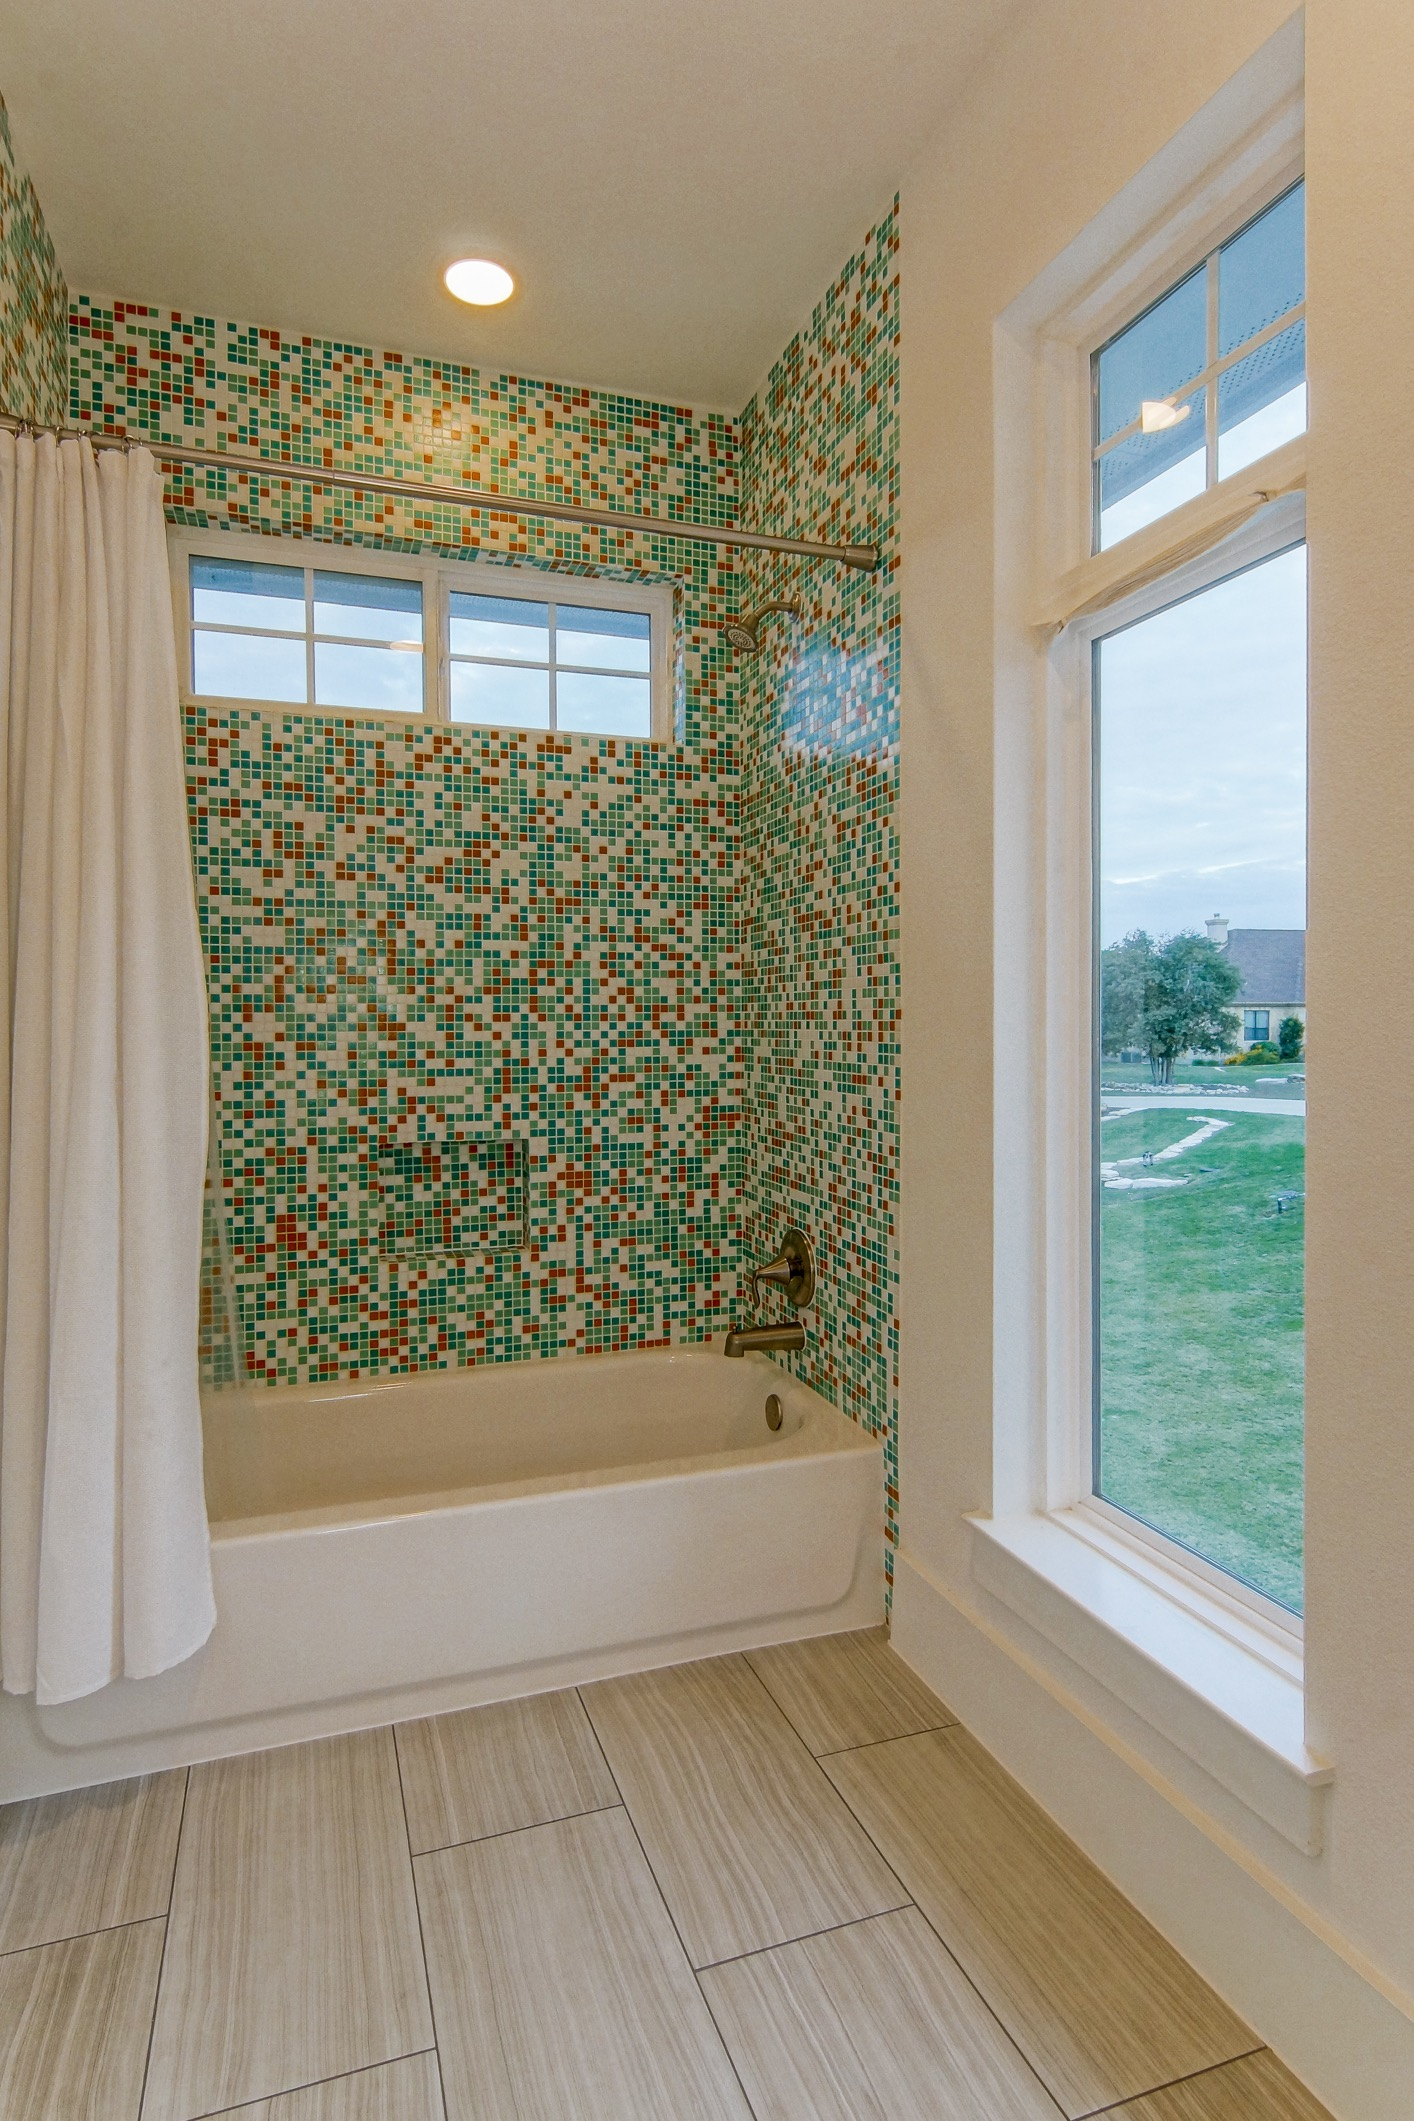 Modern Bathroom With Bold Mosaic Tile Wall (View 12 of 21)